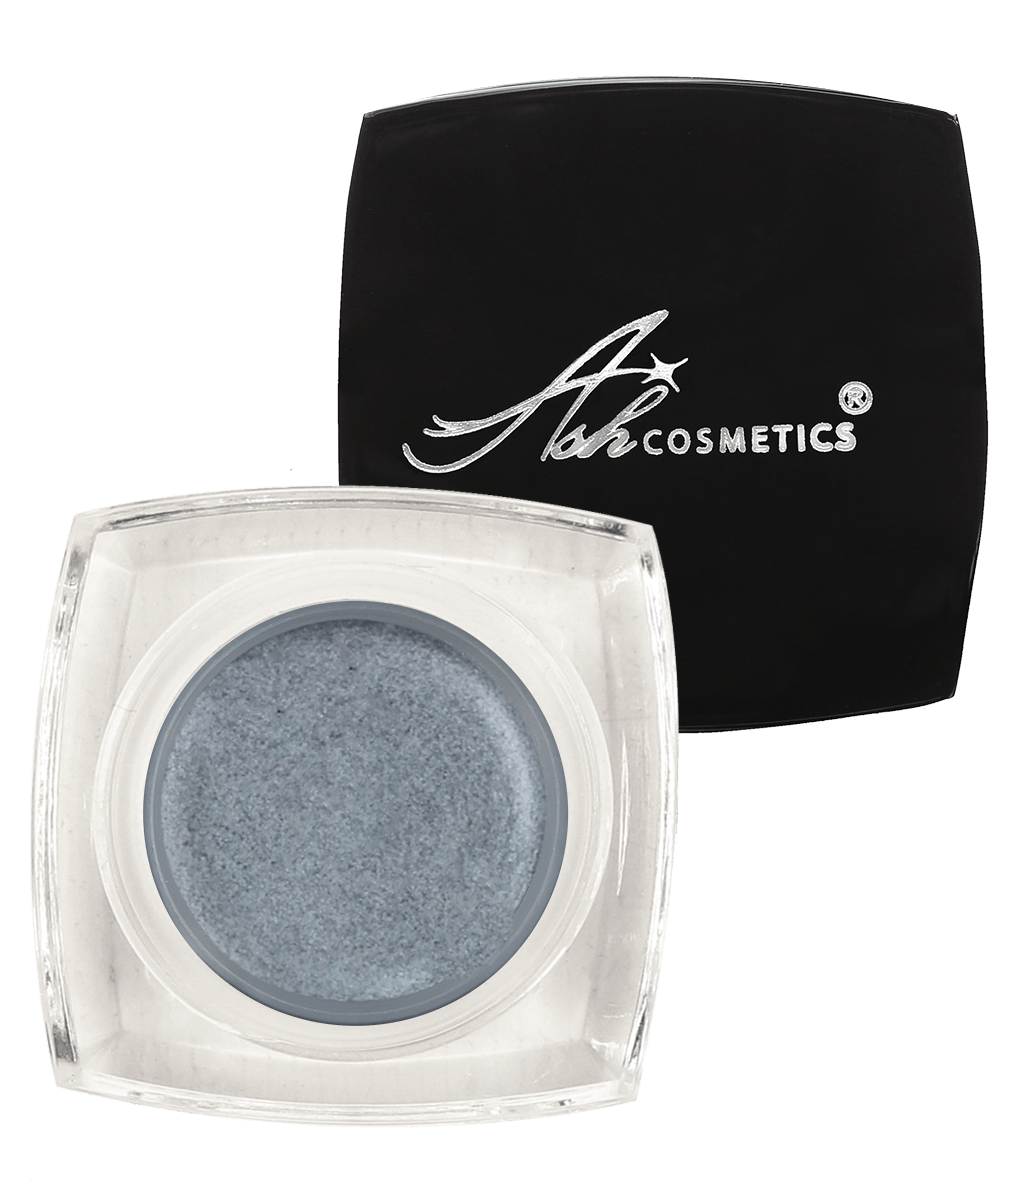 AshcosmeticsCream Eye Shadow Glamour Pot Shade Black Diamond